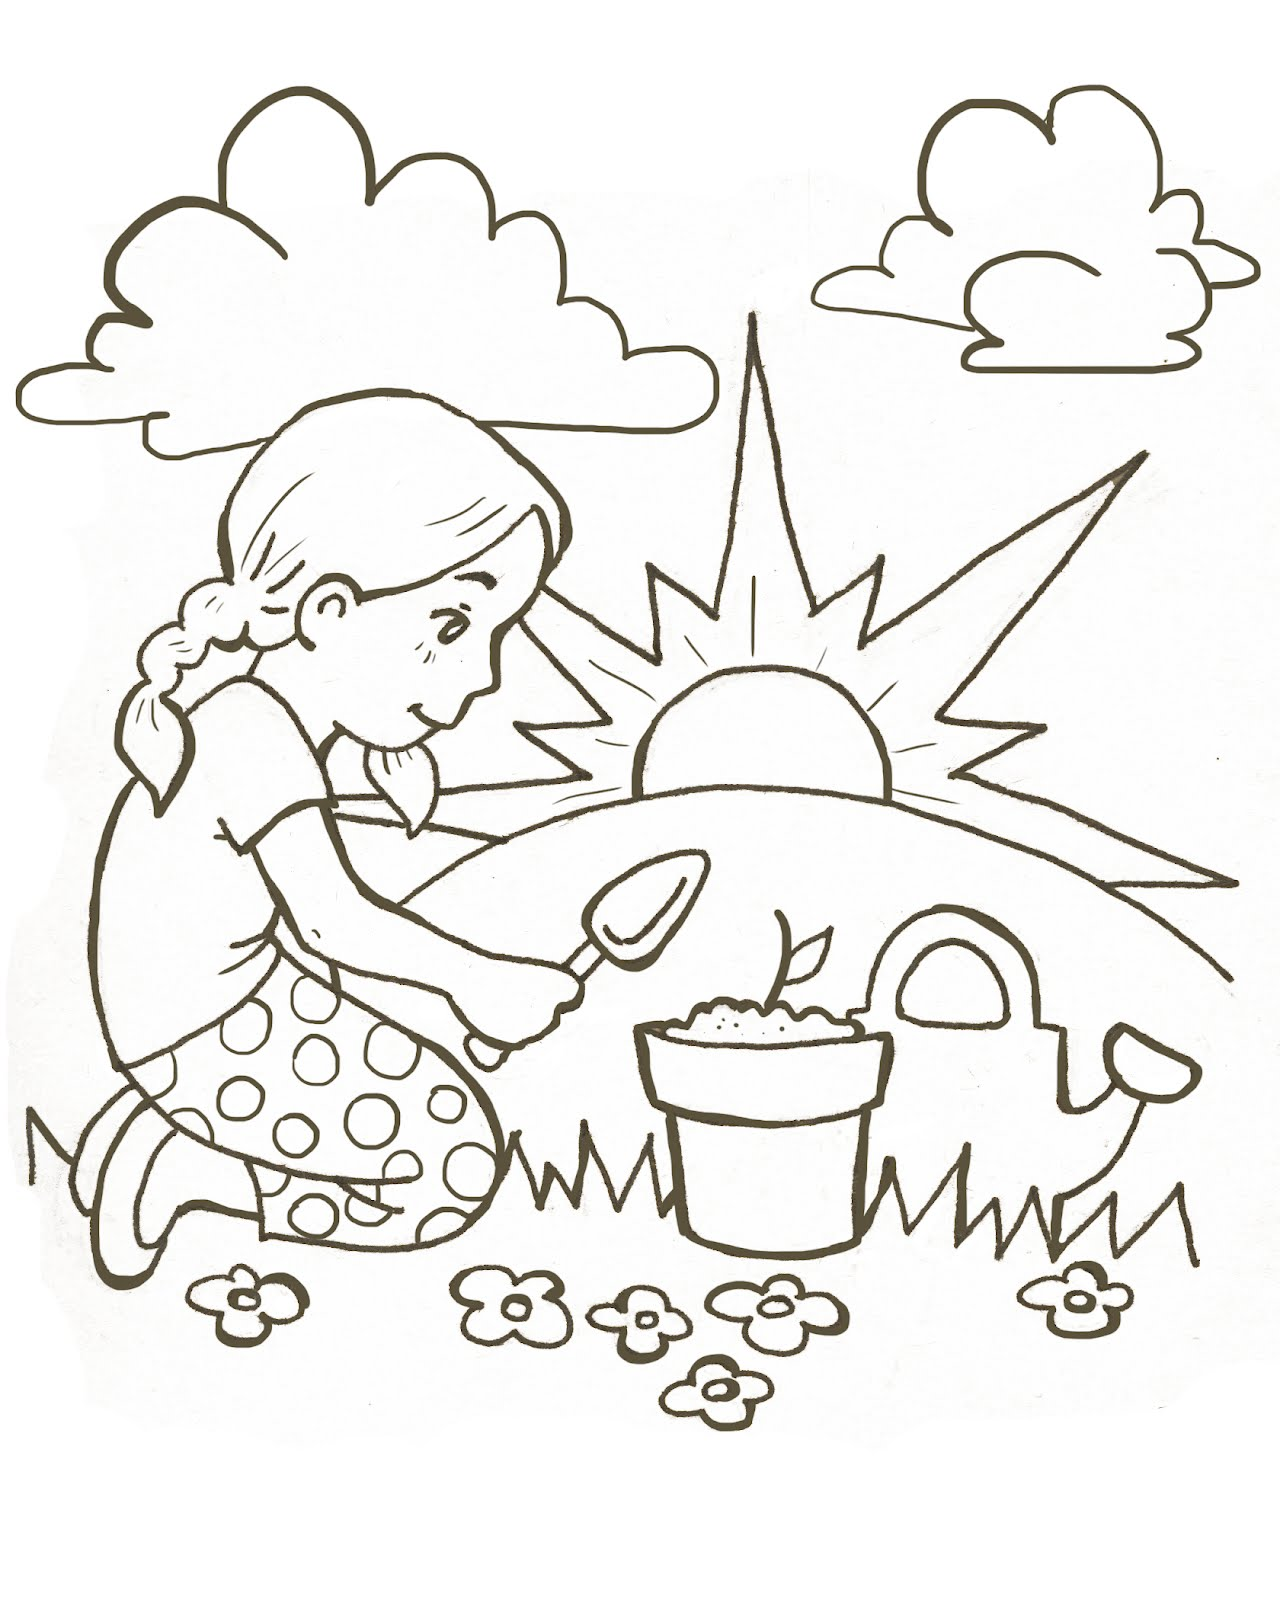 Fabulous image inside lds printable coloring pages